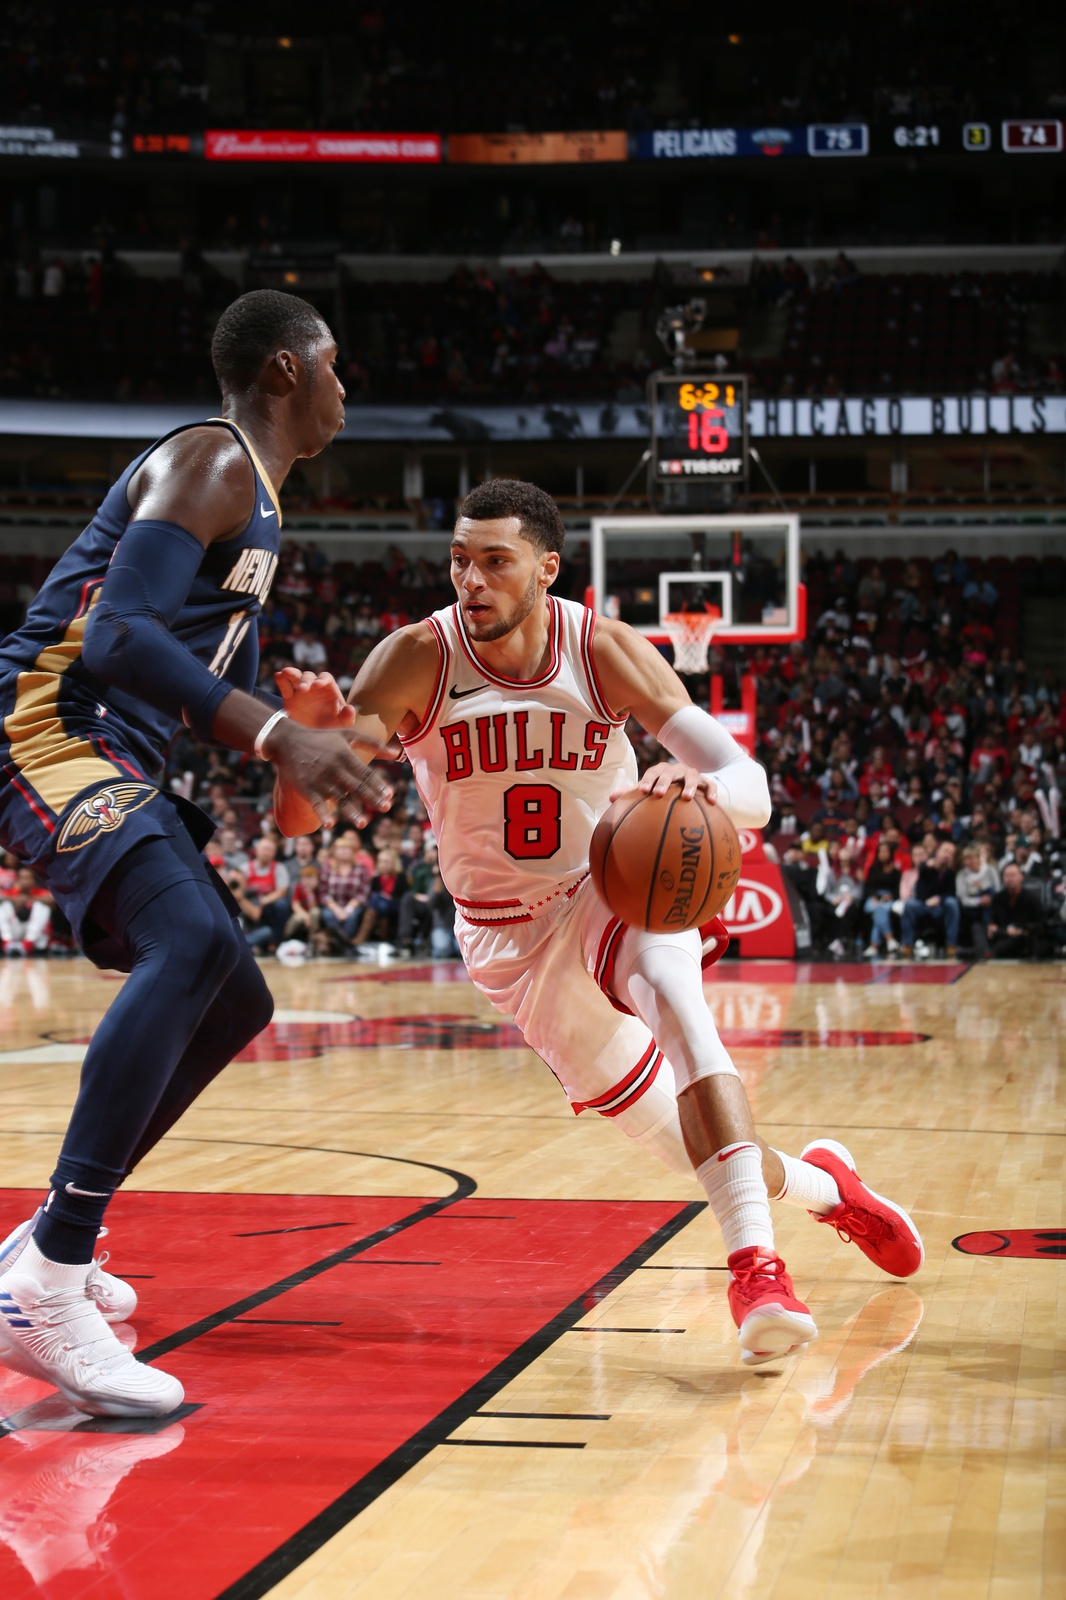 Zach LaVine #8 of the Chicago Bulls handles the ball against the New Orleans Pelicans during a pre-season game on September 30, 2018 at the United Center in Chicago, Illinois.